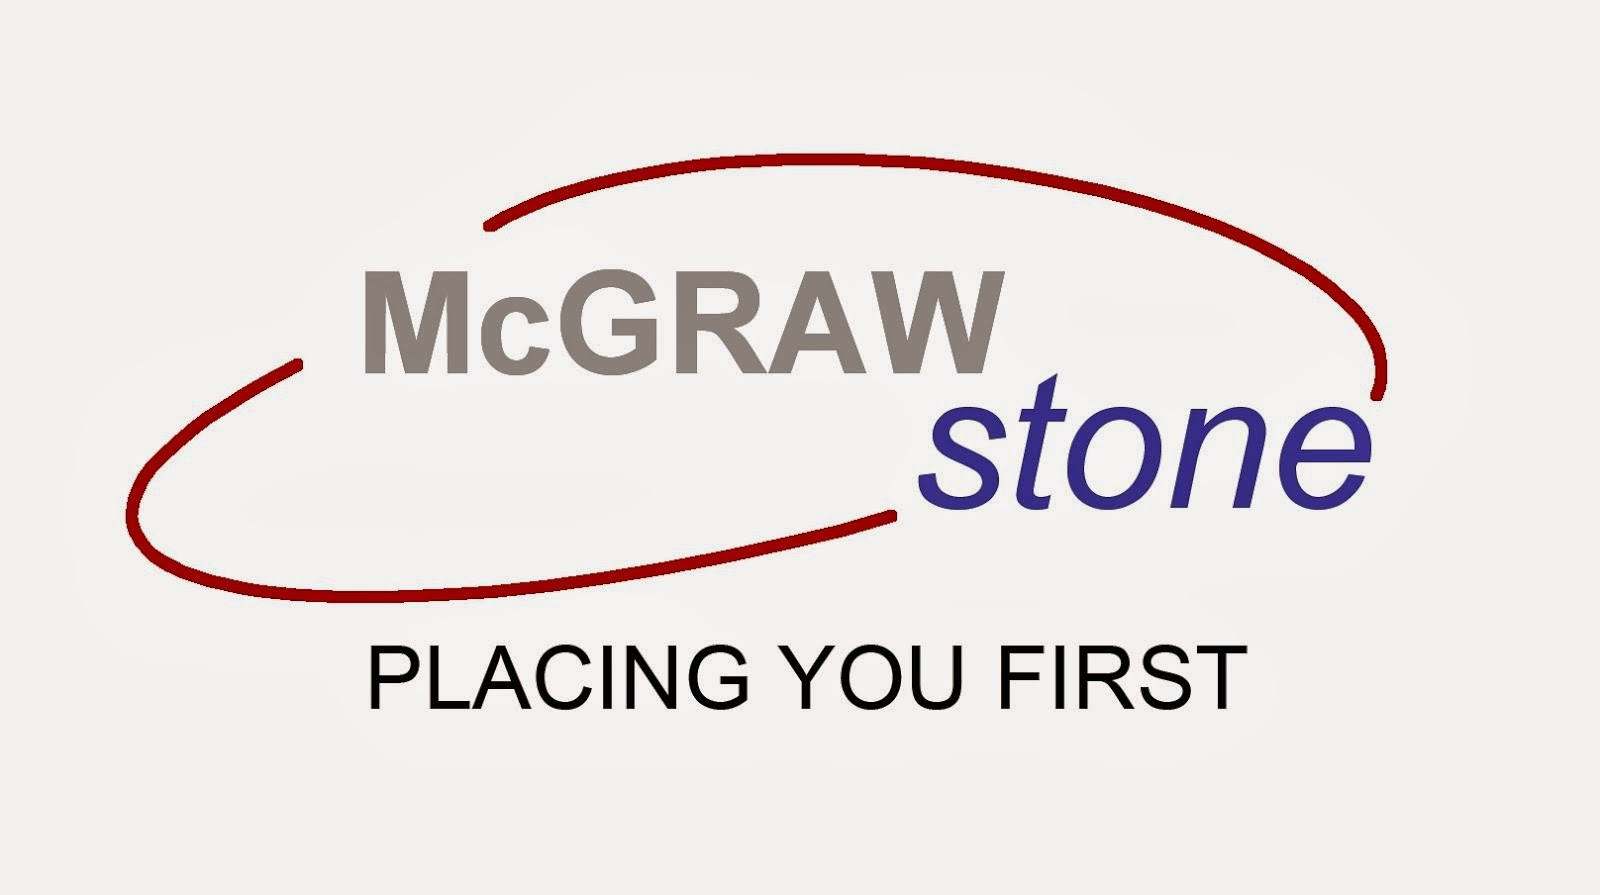 McGraw Stone Consulting